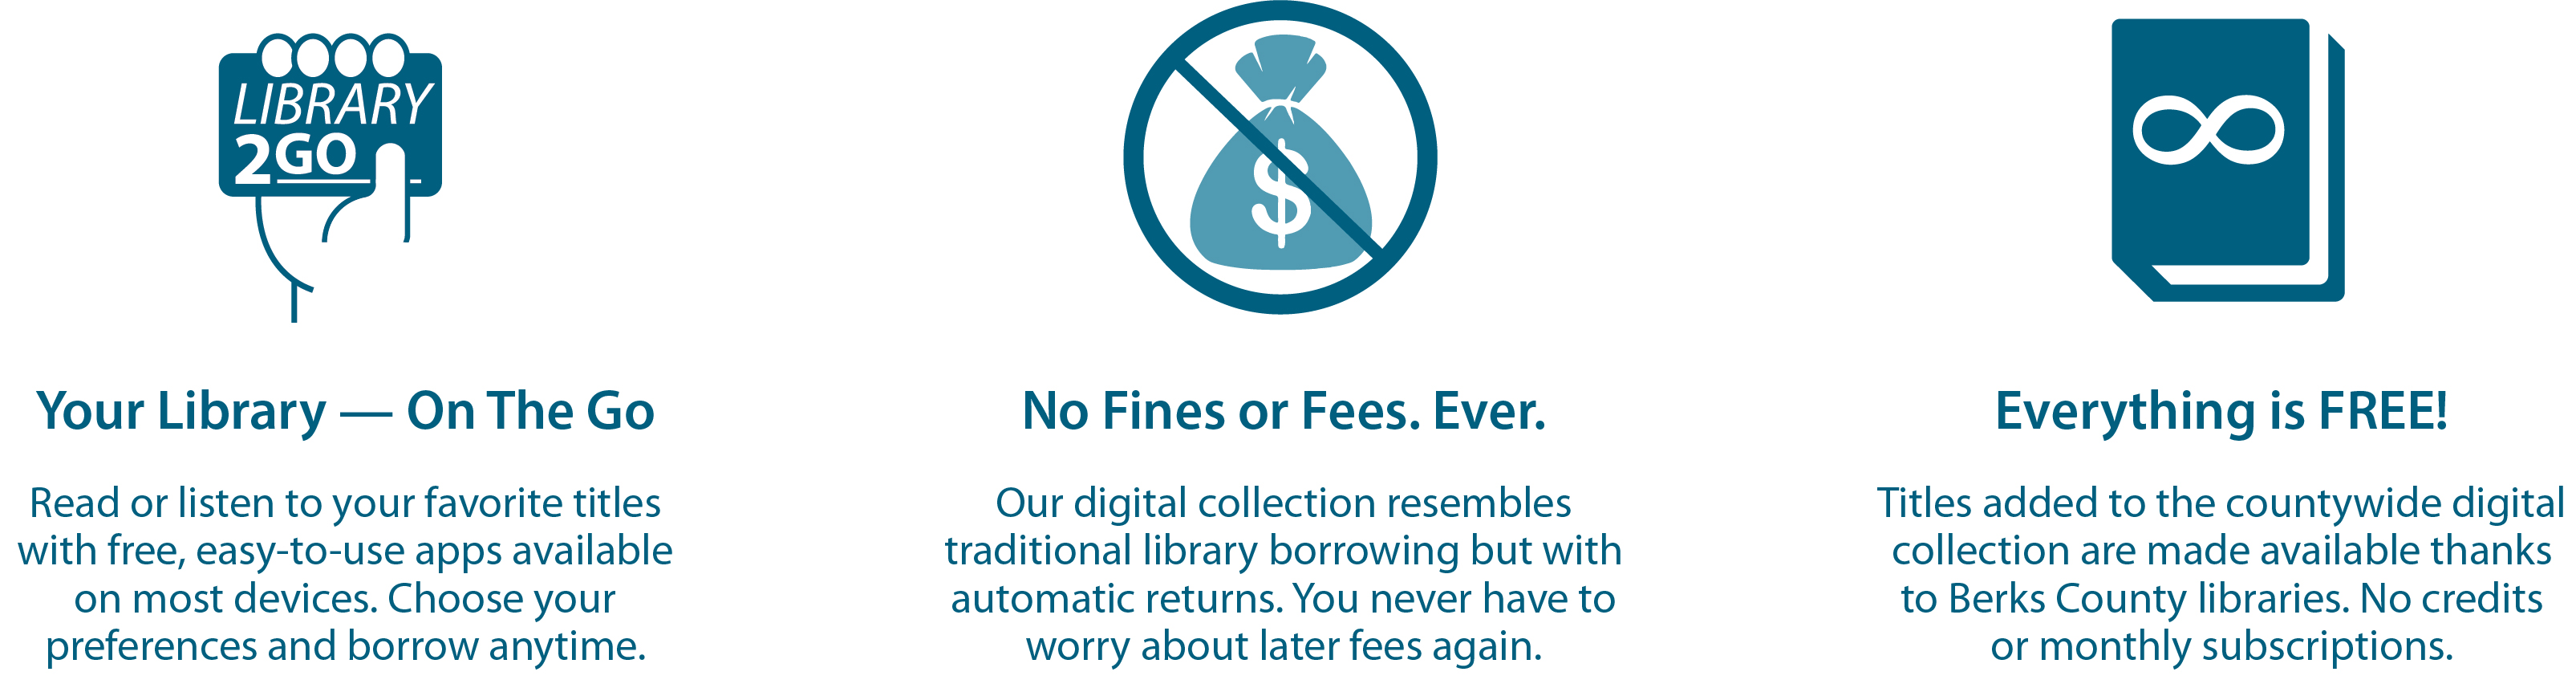 Digital Borrowing—Library 2 Go, No Fines or Fees, Completely Free